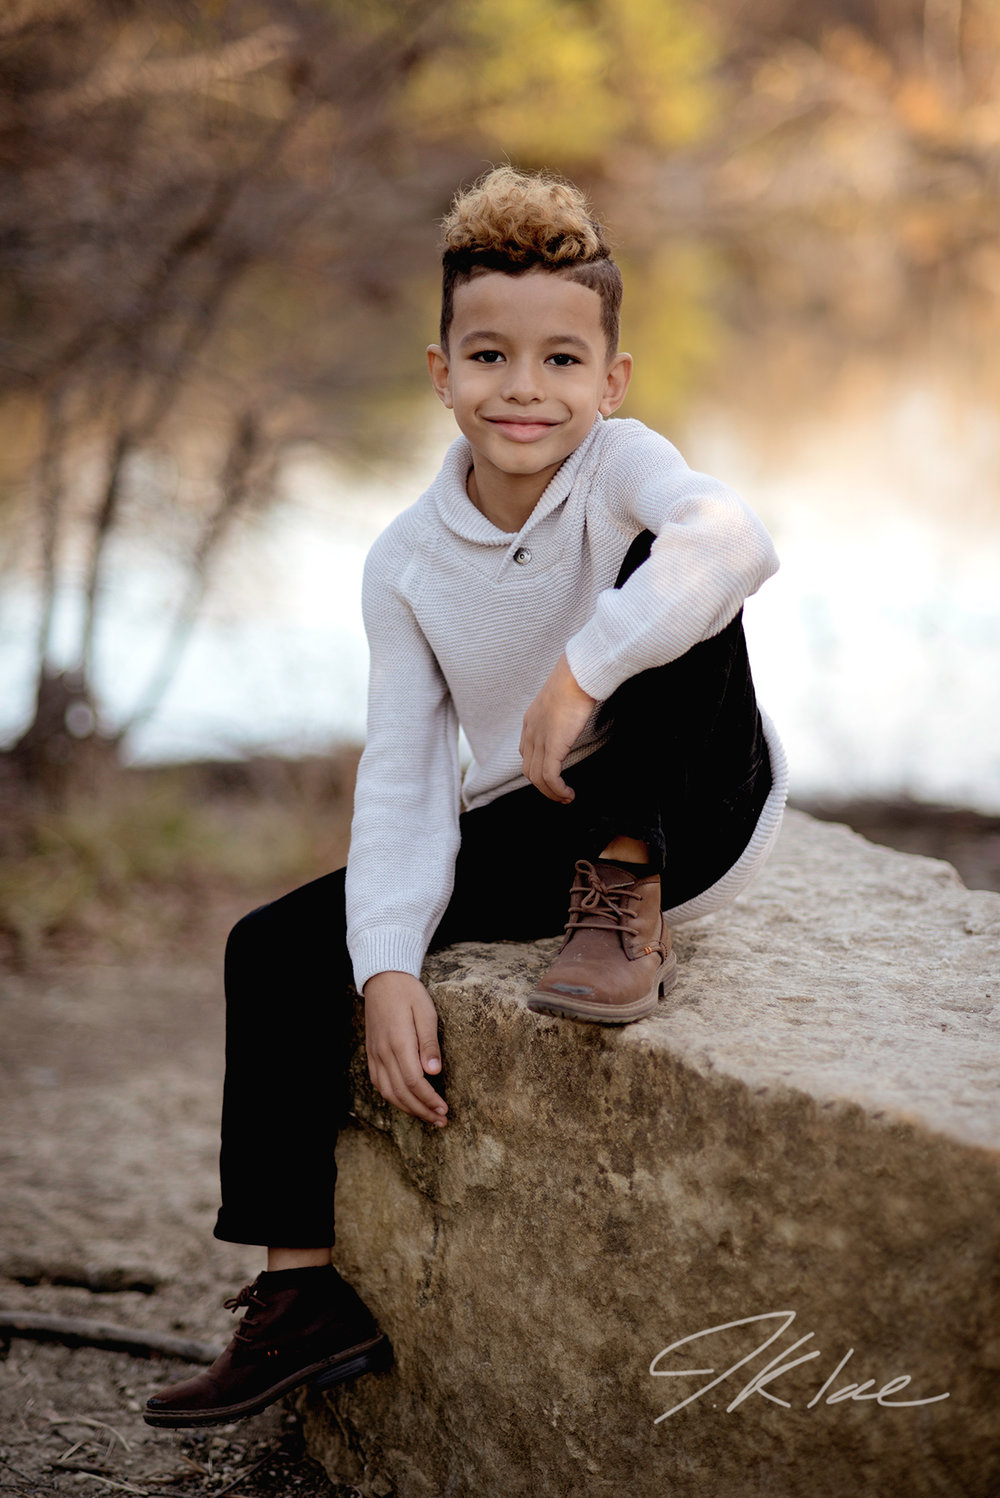 Portrait of a Boy by the pond at Arbor Hills Nature preserve in Plano Texas